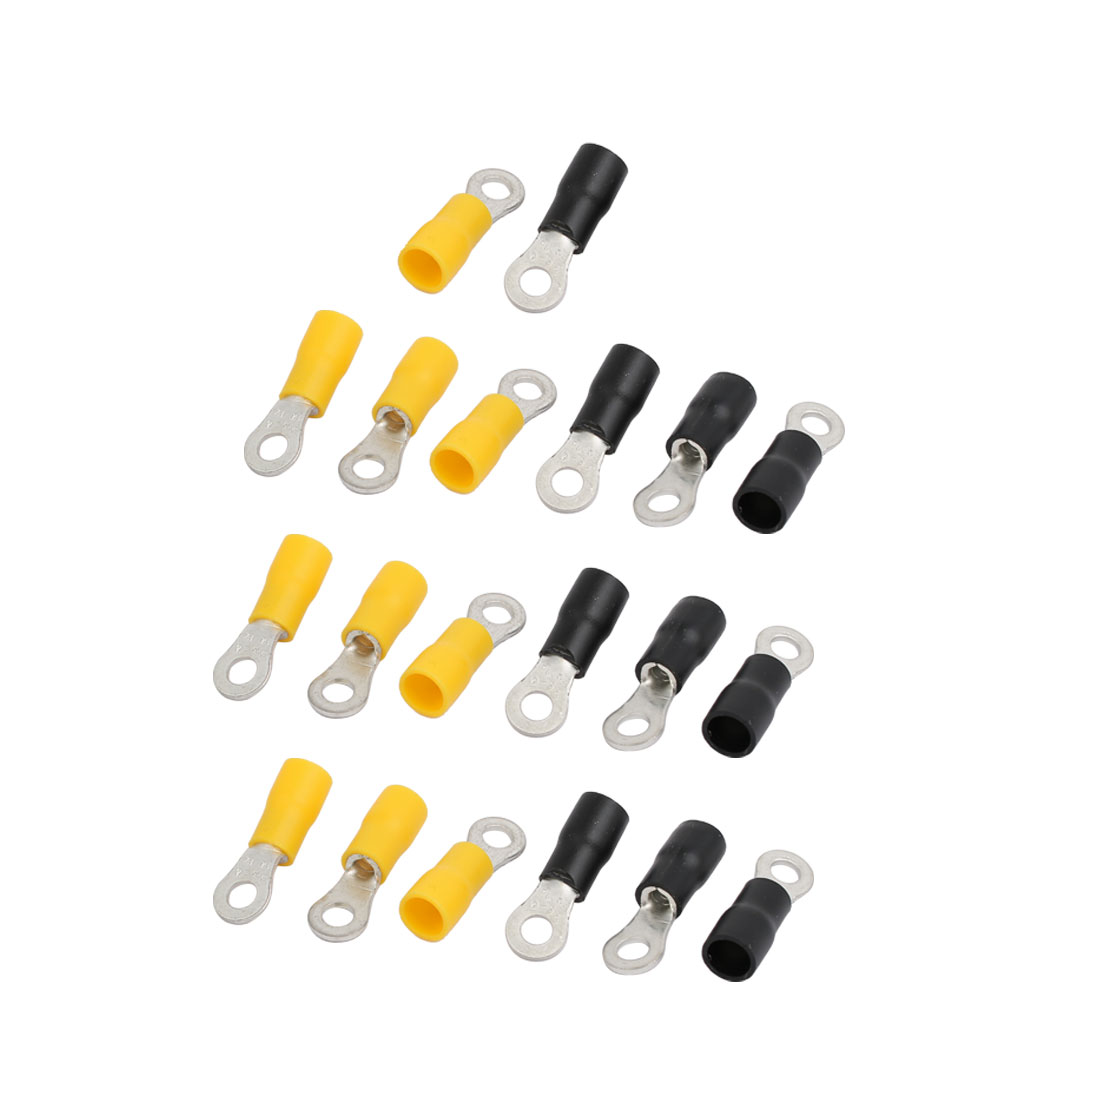 20pcs RV3.5-4 Pre Insulated Ring Crimp Terminal Yellow Black for AWG 14-12 Wire